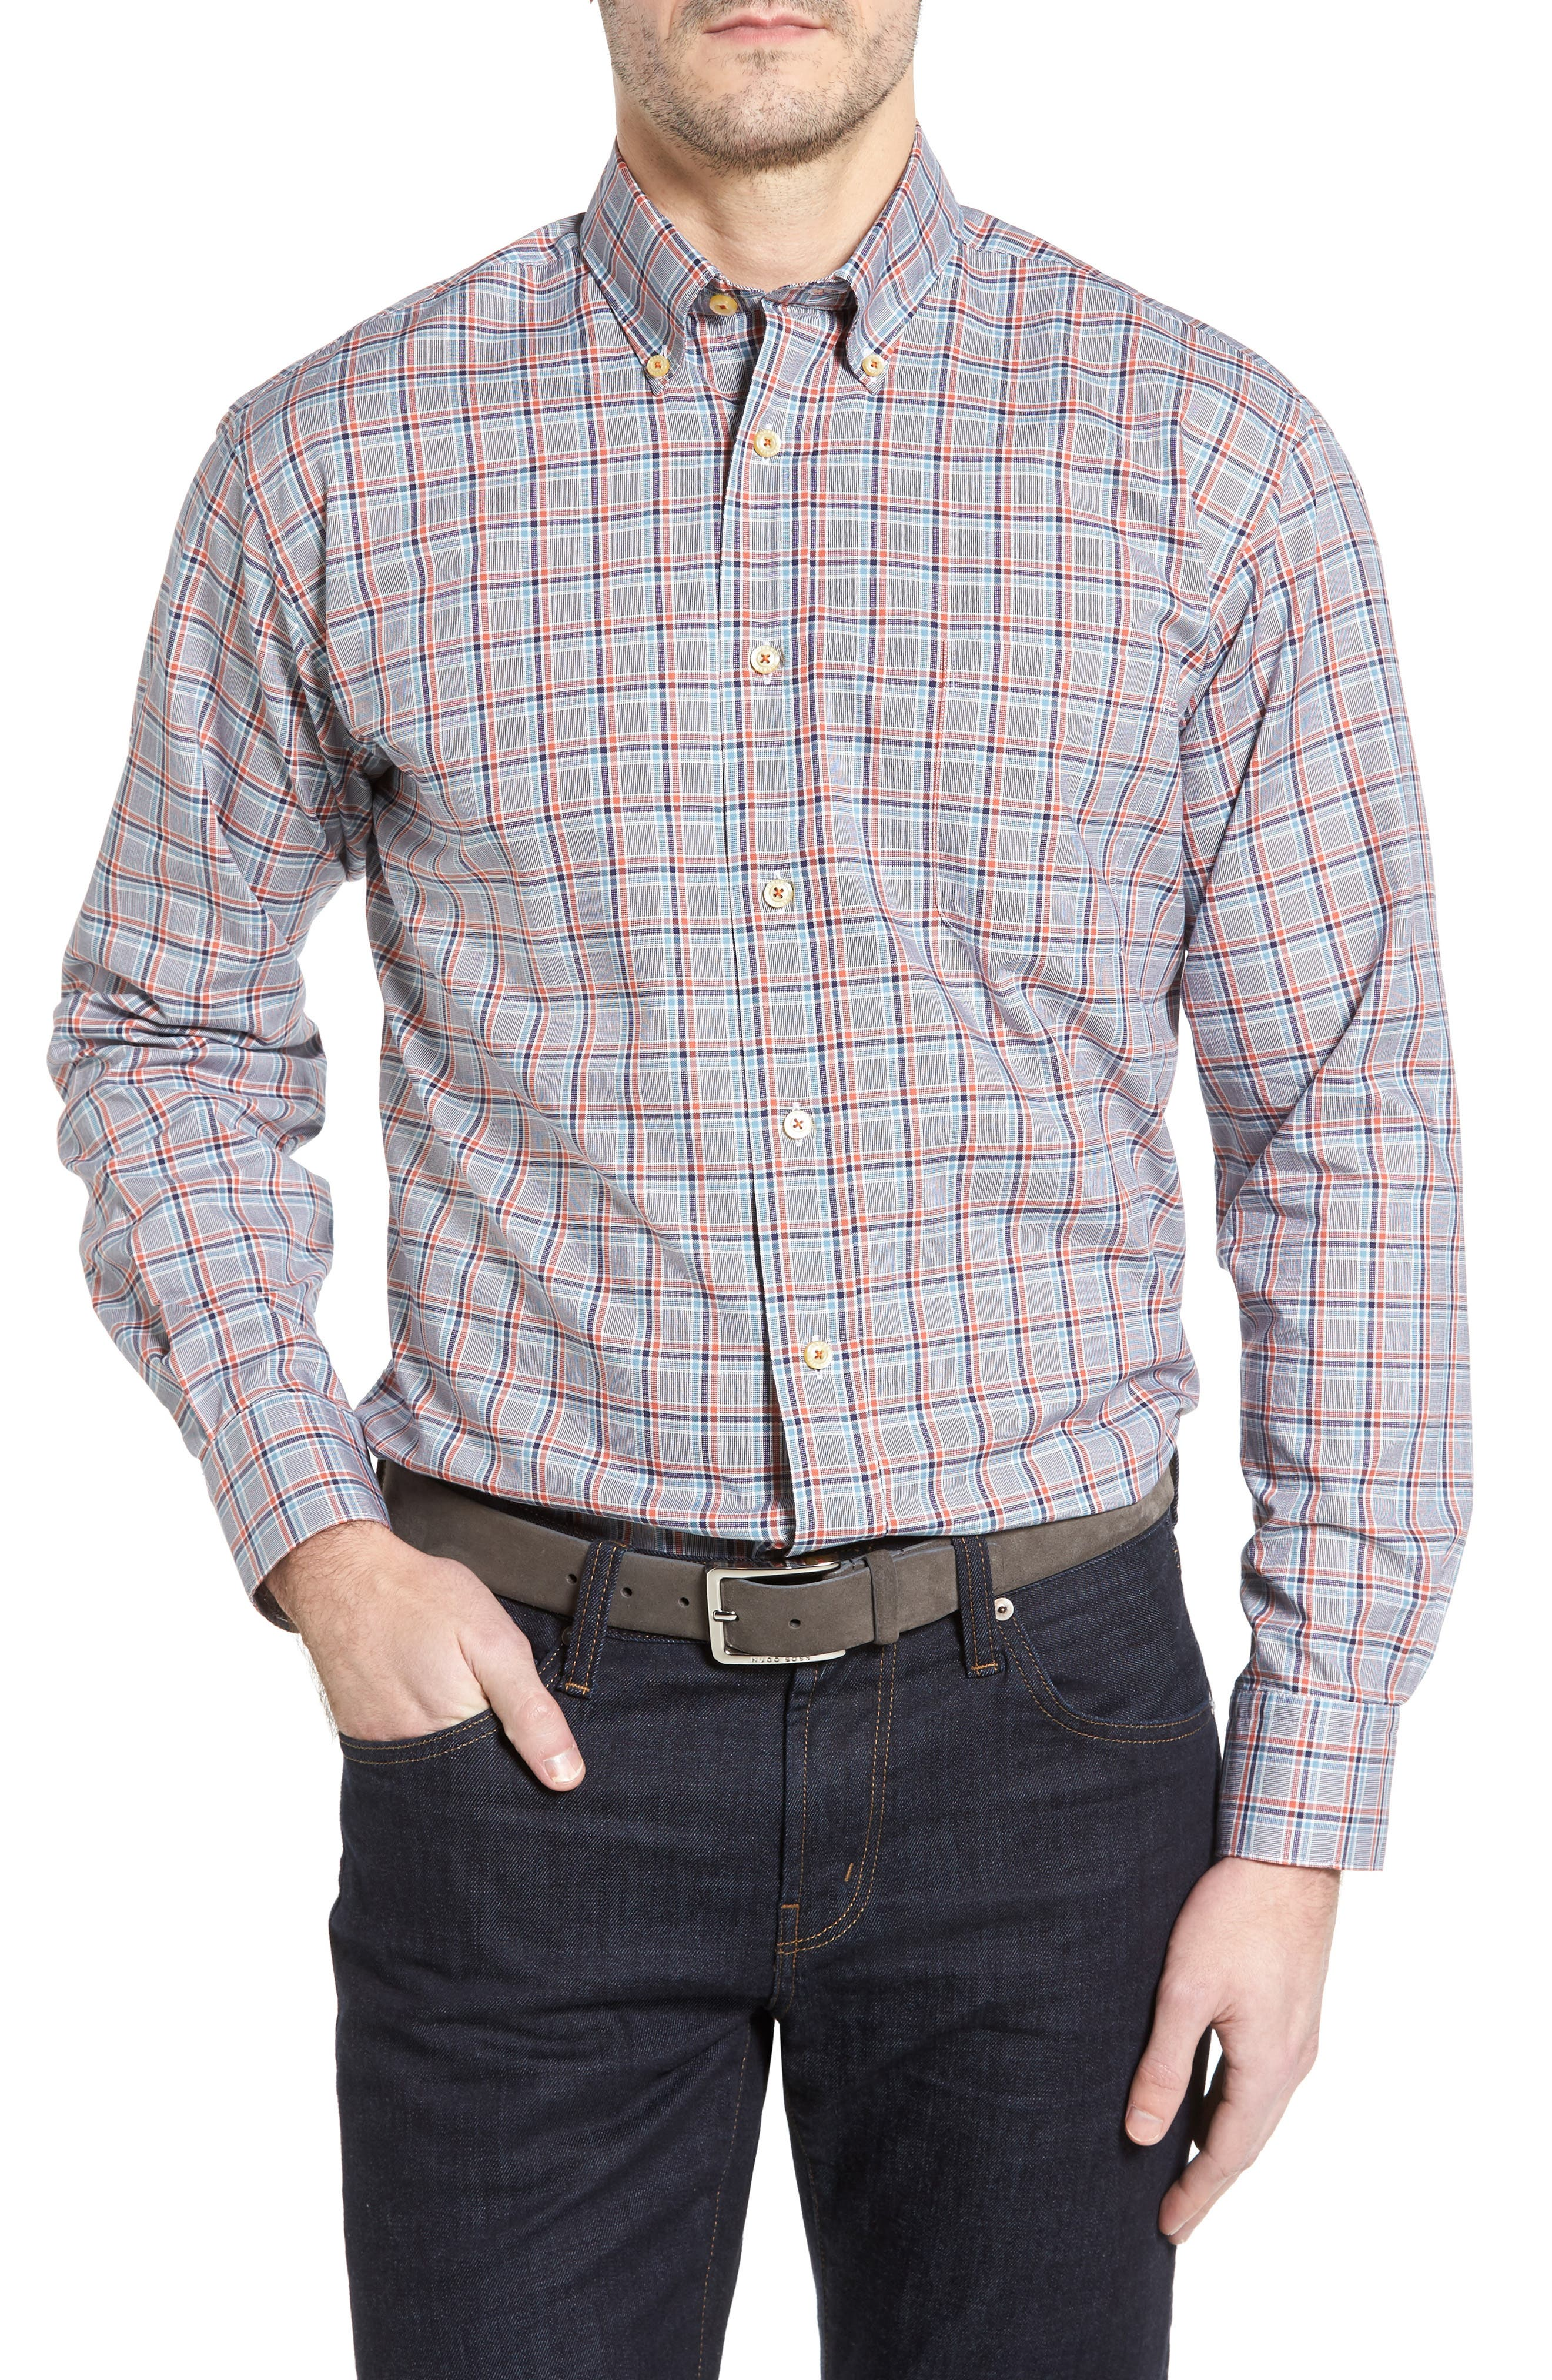 Anderson Classic Fit Plaid Oxford Sport Shirt,                         Main,                         color, 401